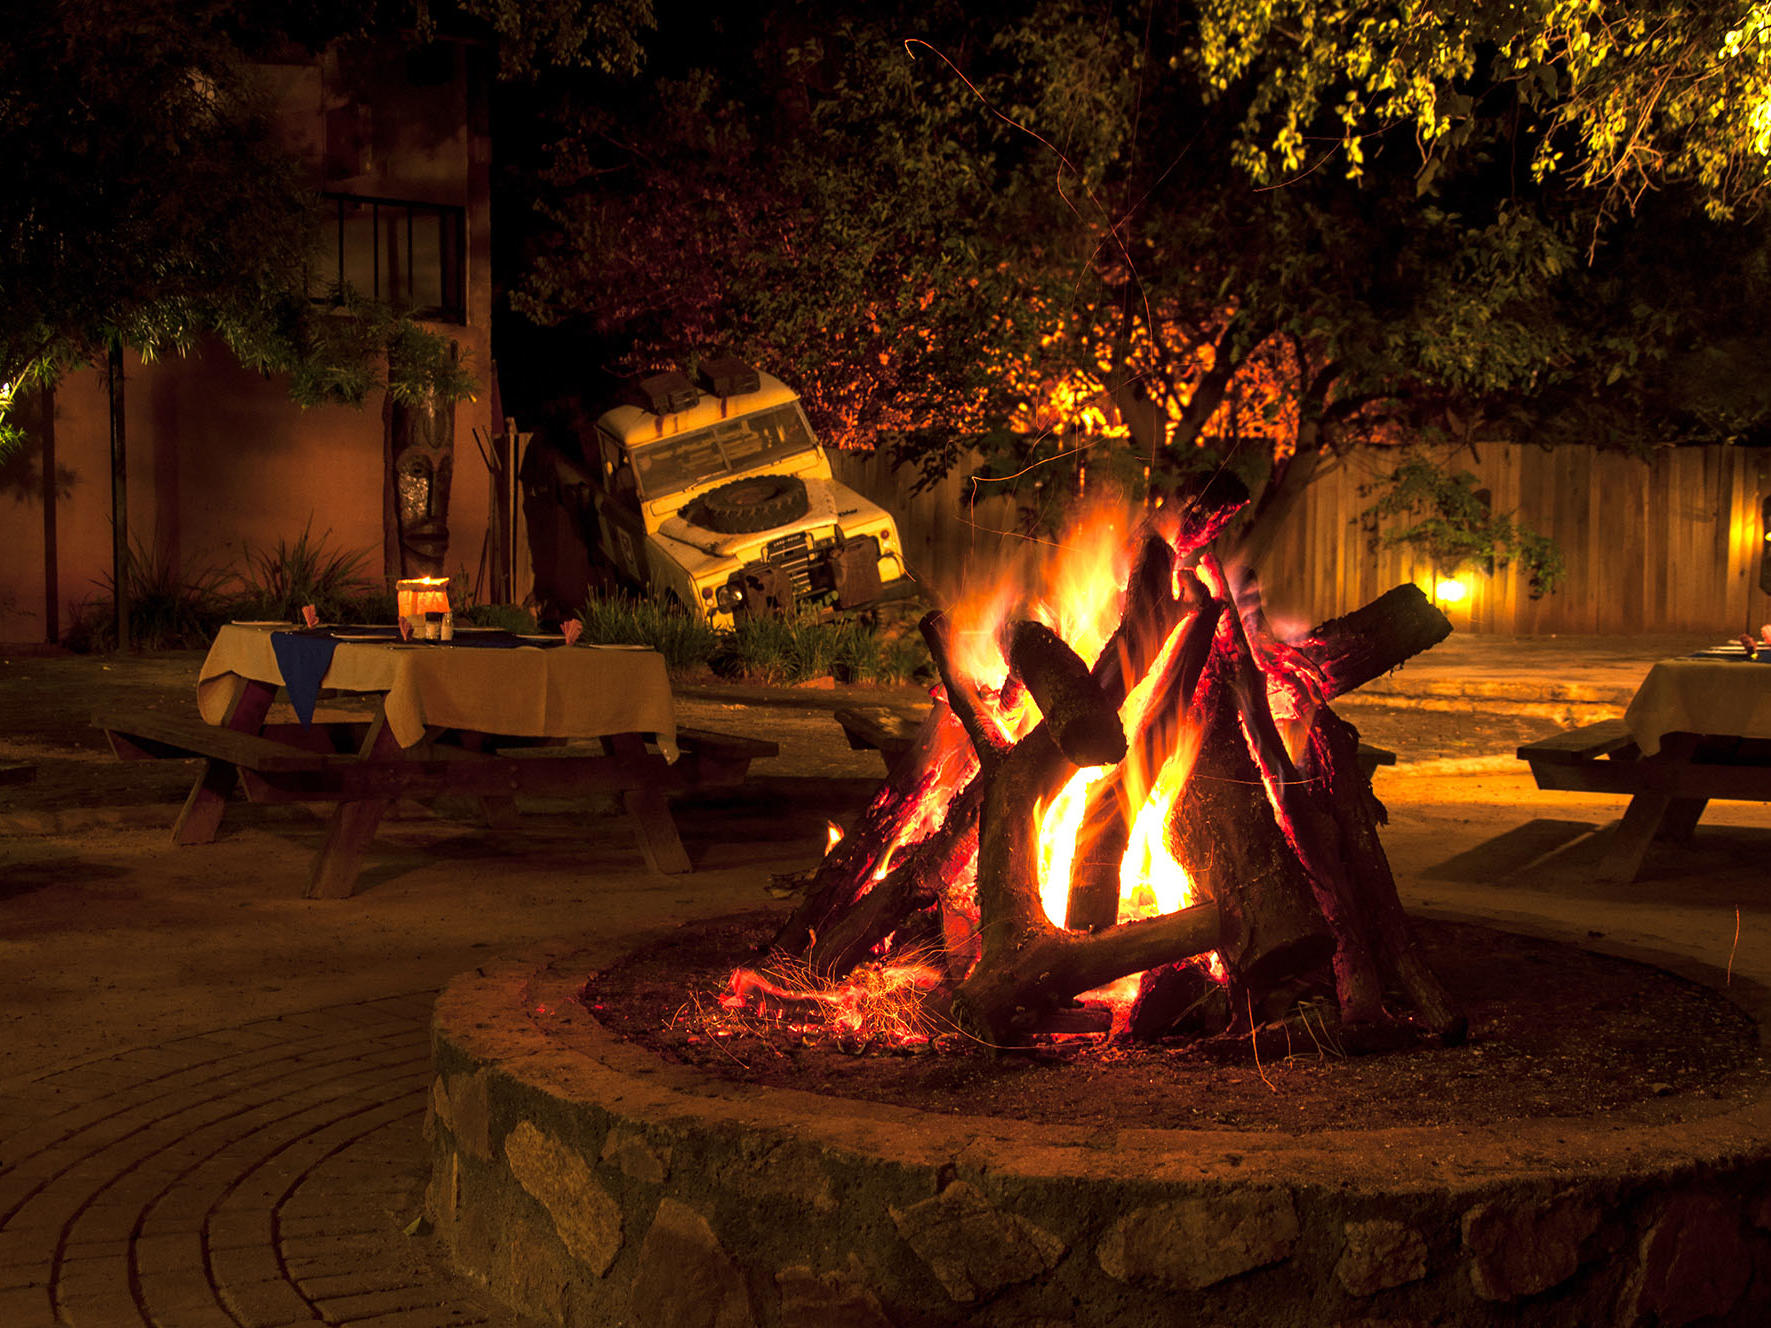 Boma Restaurant by the Fire